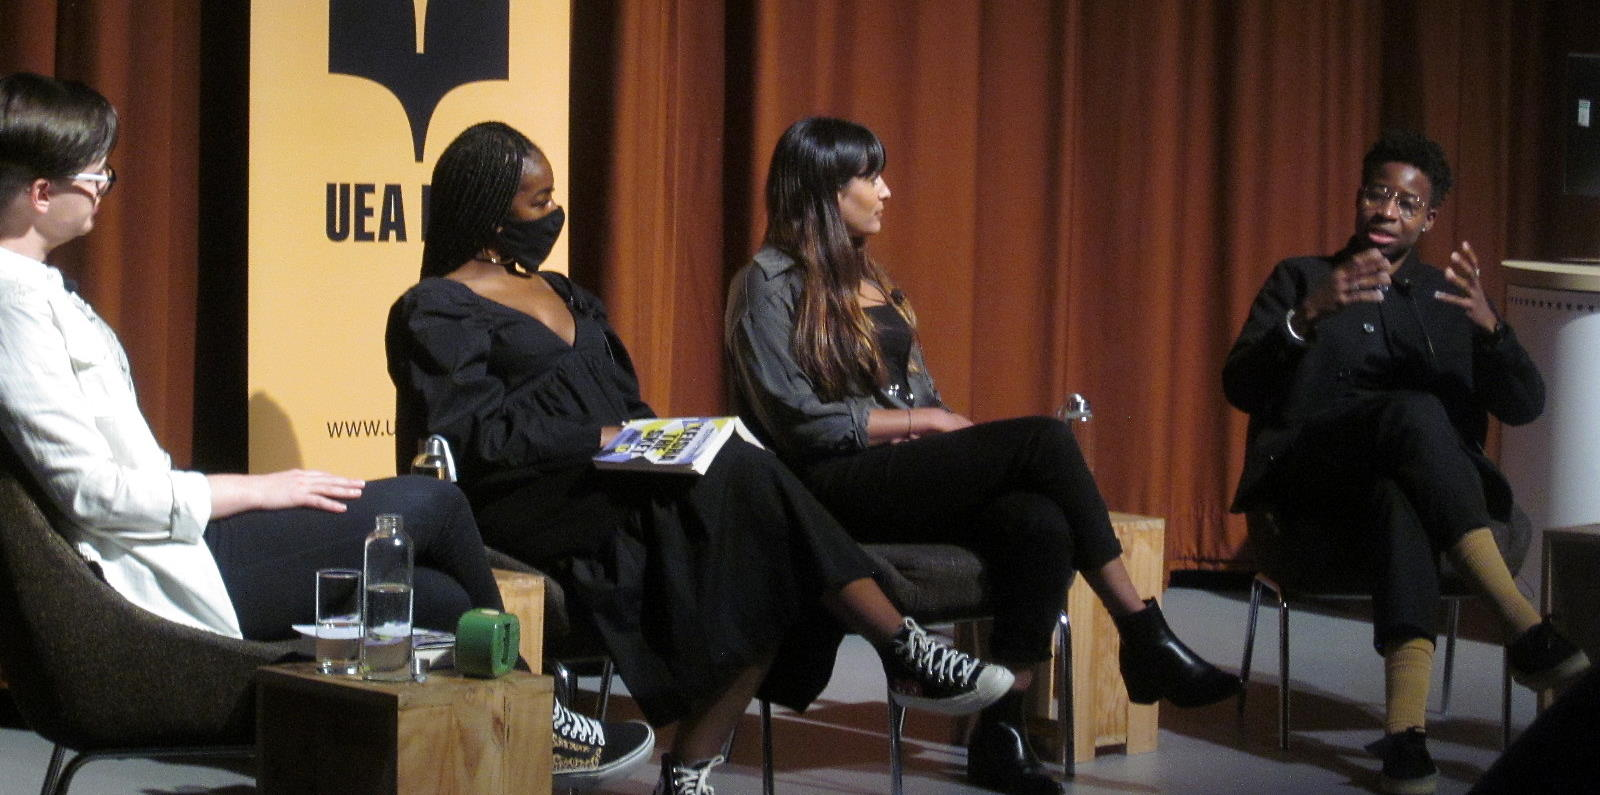 UEA #Merky Books discussion - from left to right, KR Moorhead, Jade LB, Jyoti Patel and Lemara Lindsay-Prince.